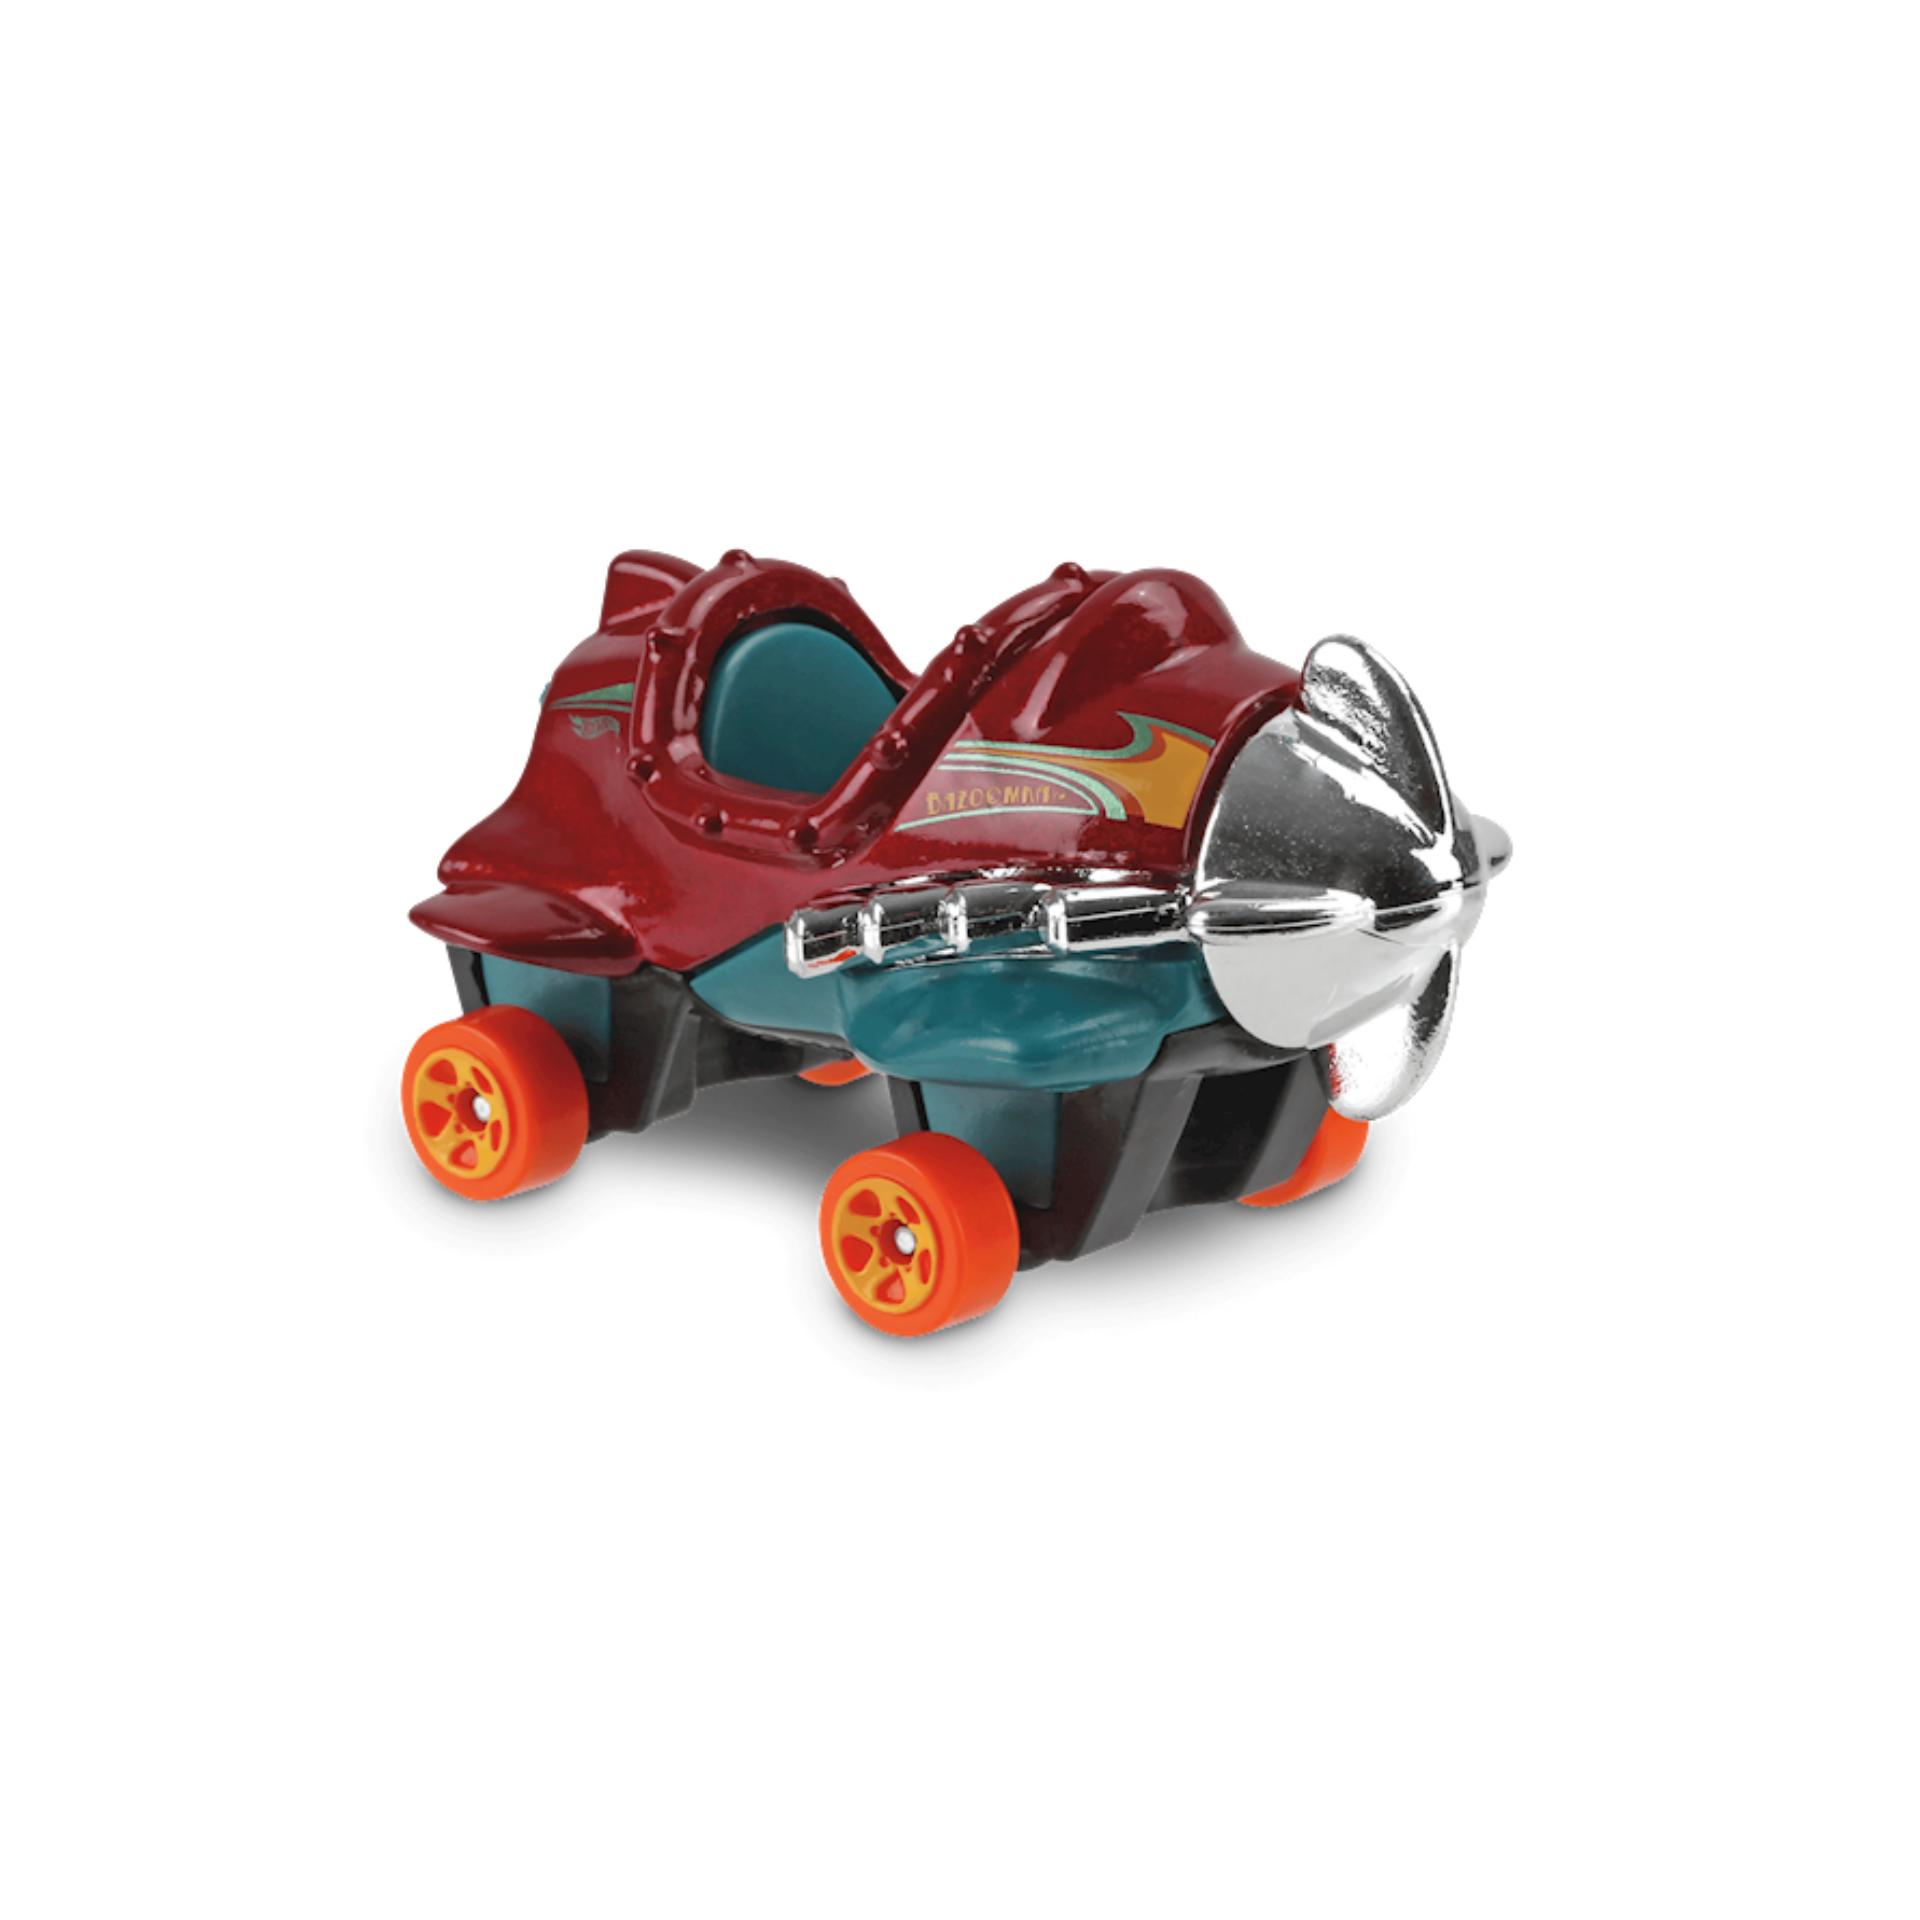 Hot Wheels Basic Car (DC: ADDH) - Bazoomka